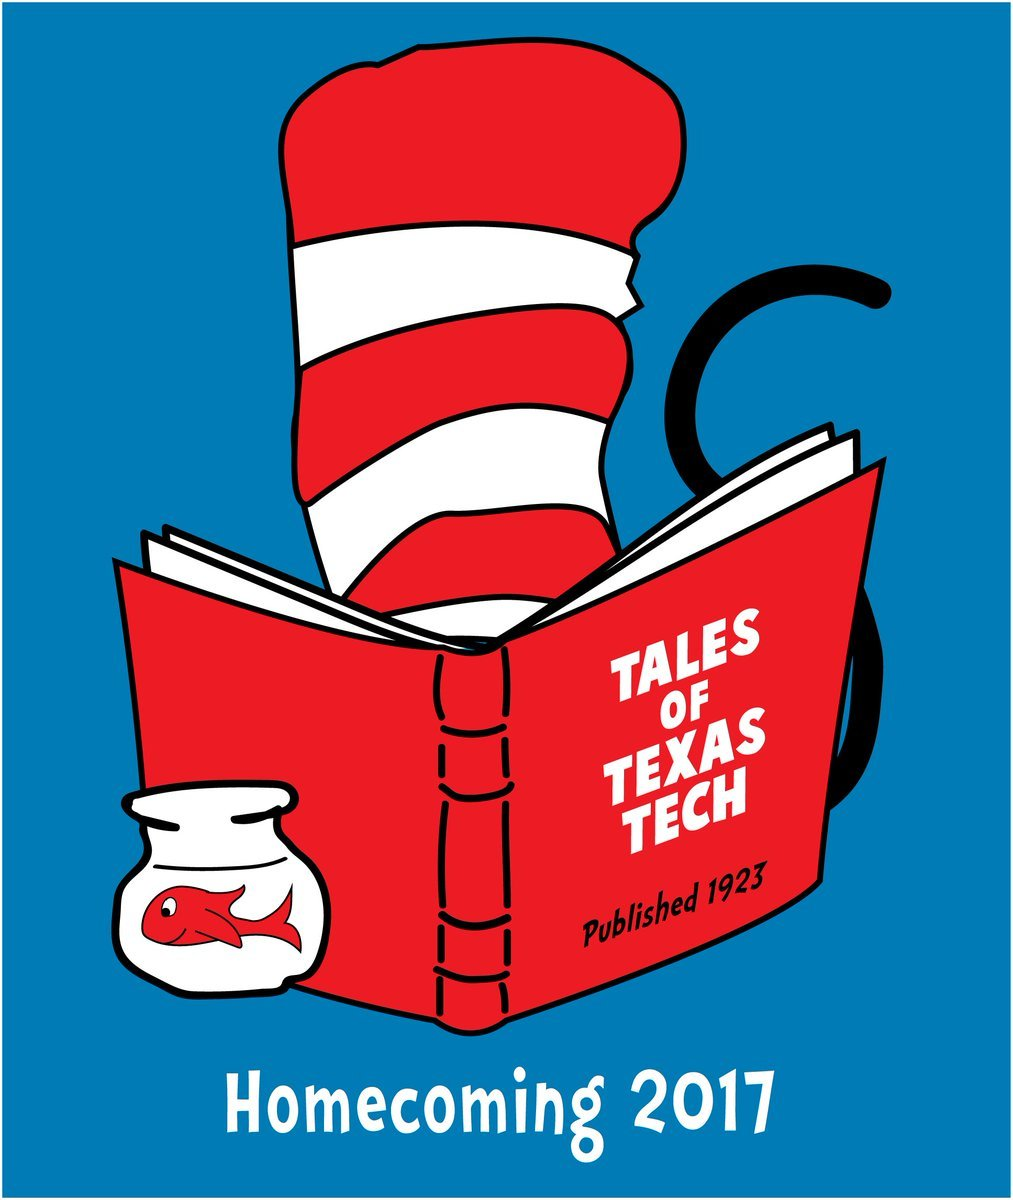 1013x1200 Tales Of Texas Tech Published 1923 Homecoming Traditions Then